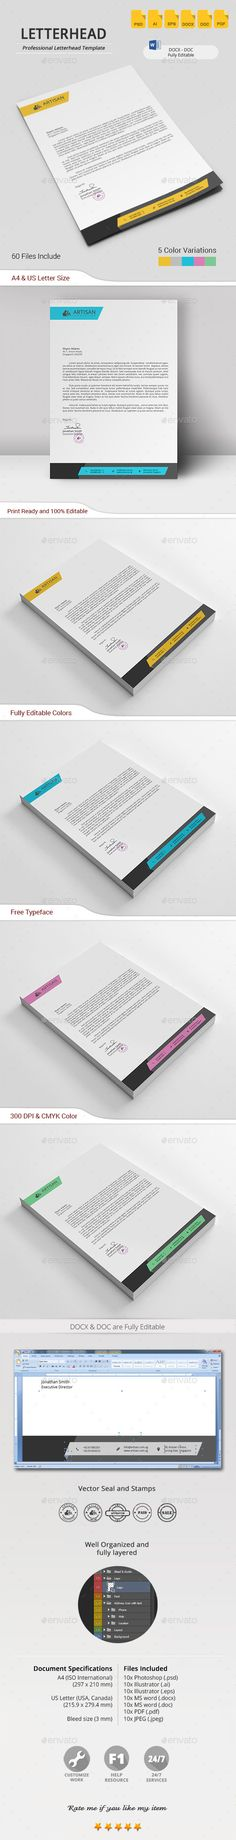 Buy Letterhead by artisanHR on GraphicRiver. Letterhead A simple unique letterhead for all kind of business and personal purpose usages. Company Letterhead Template, Letterhead Design, Brochure Design, Branding Design, Stationery Printing, Stationery Design, Letterhead Business, Business Card Design, Print Templates